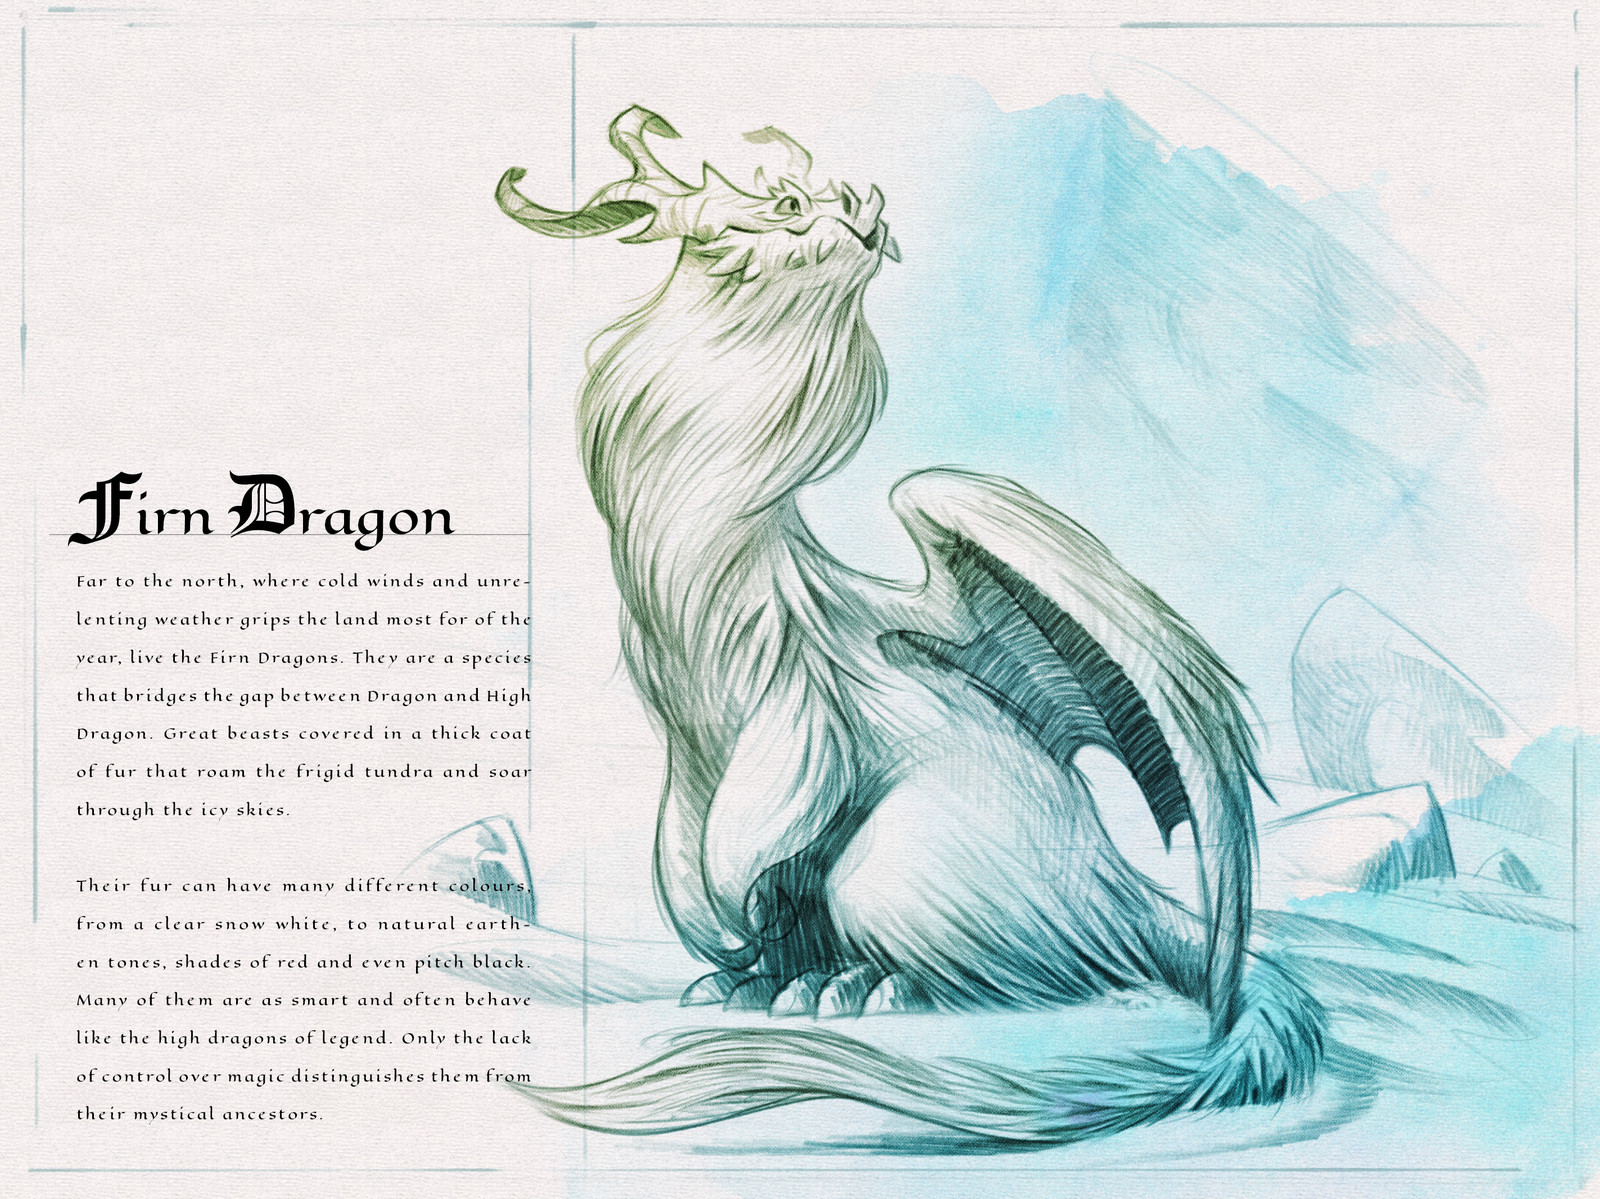 Page one of the  Dragon Compendium showing and describing the Firn Dragon